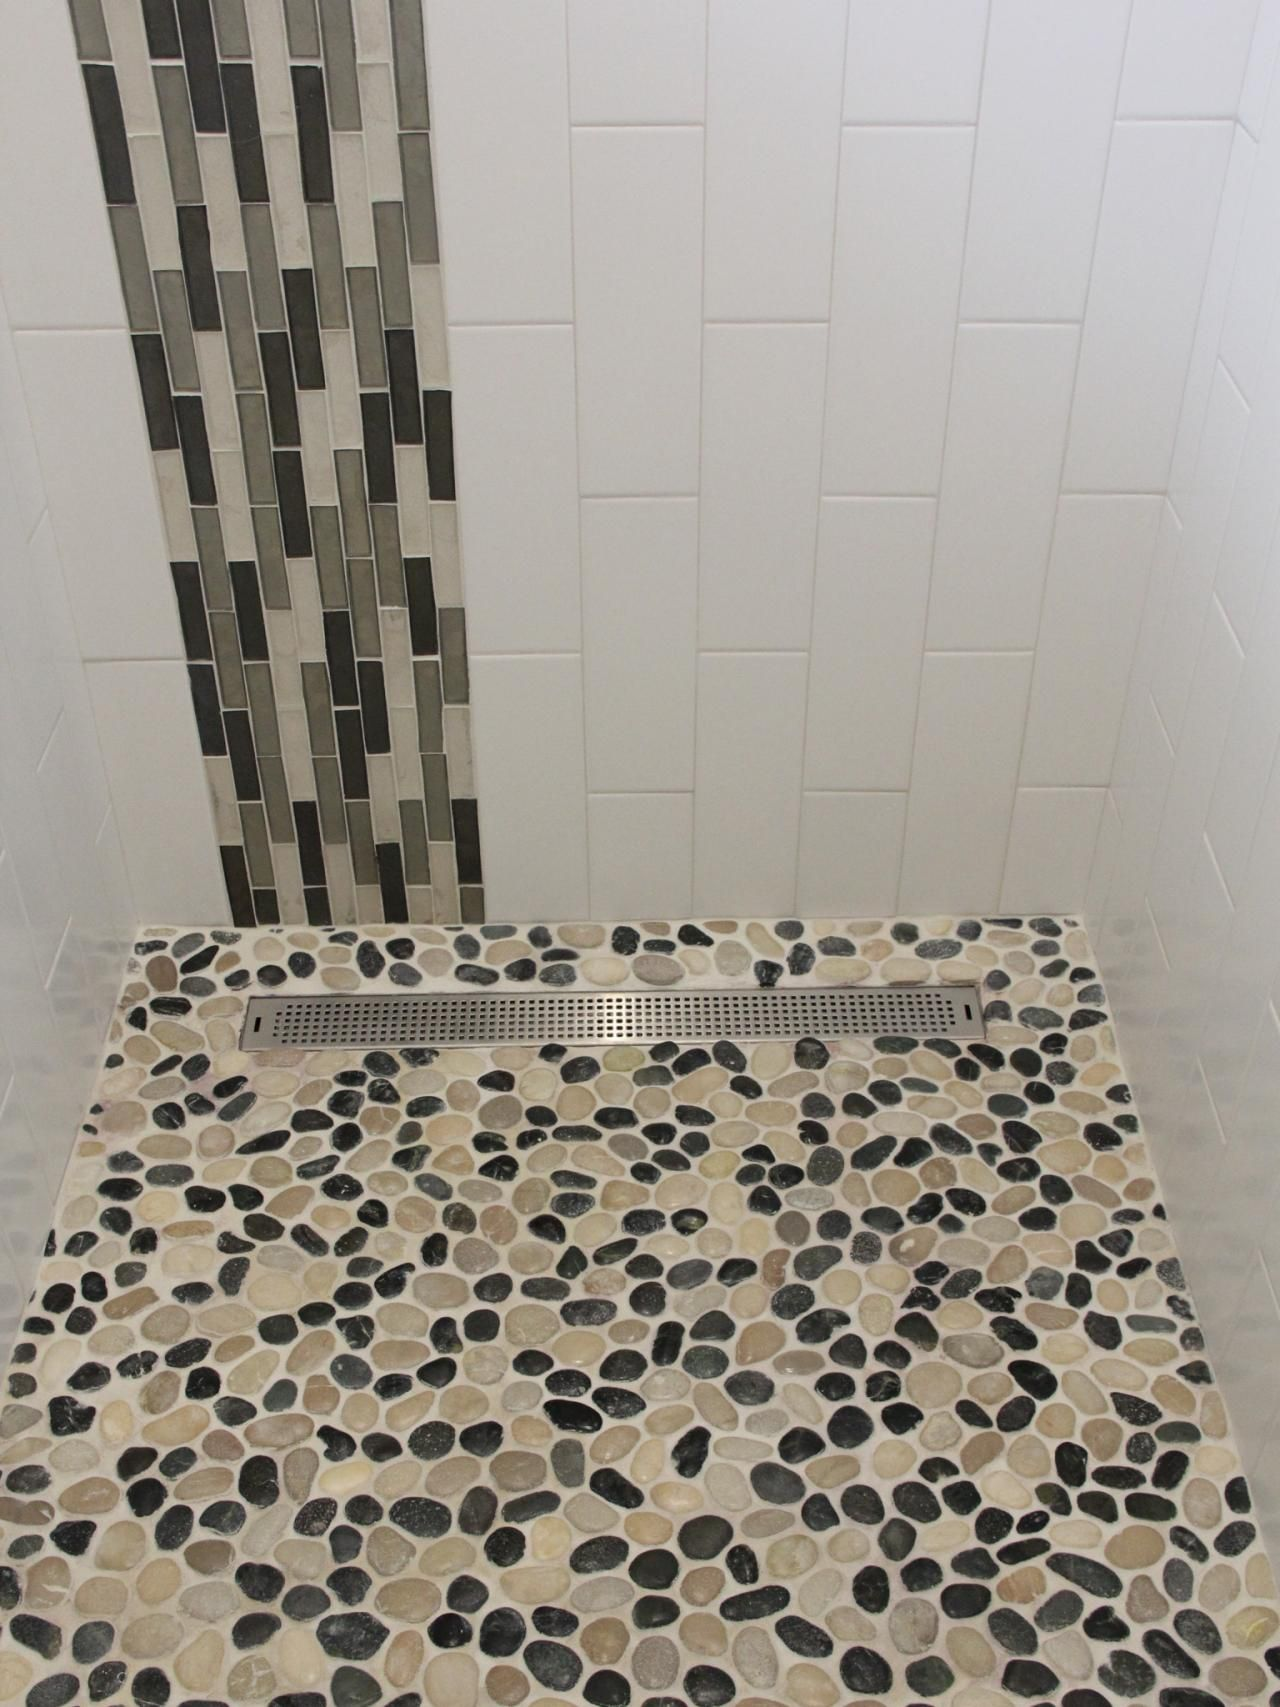 Black and white pebble tile white pebbles pebble tiles and grout black and white pebble tile pebble shower floortile dailygadgetfo Choice Image